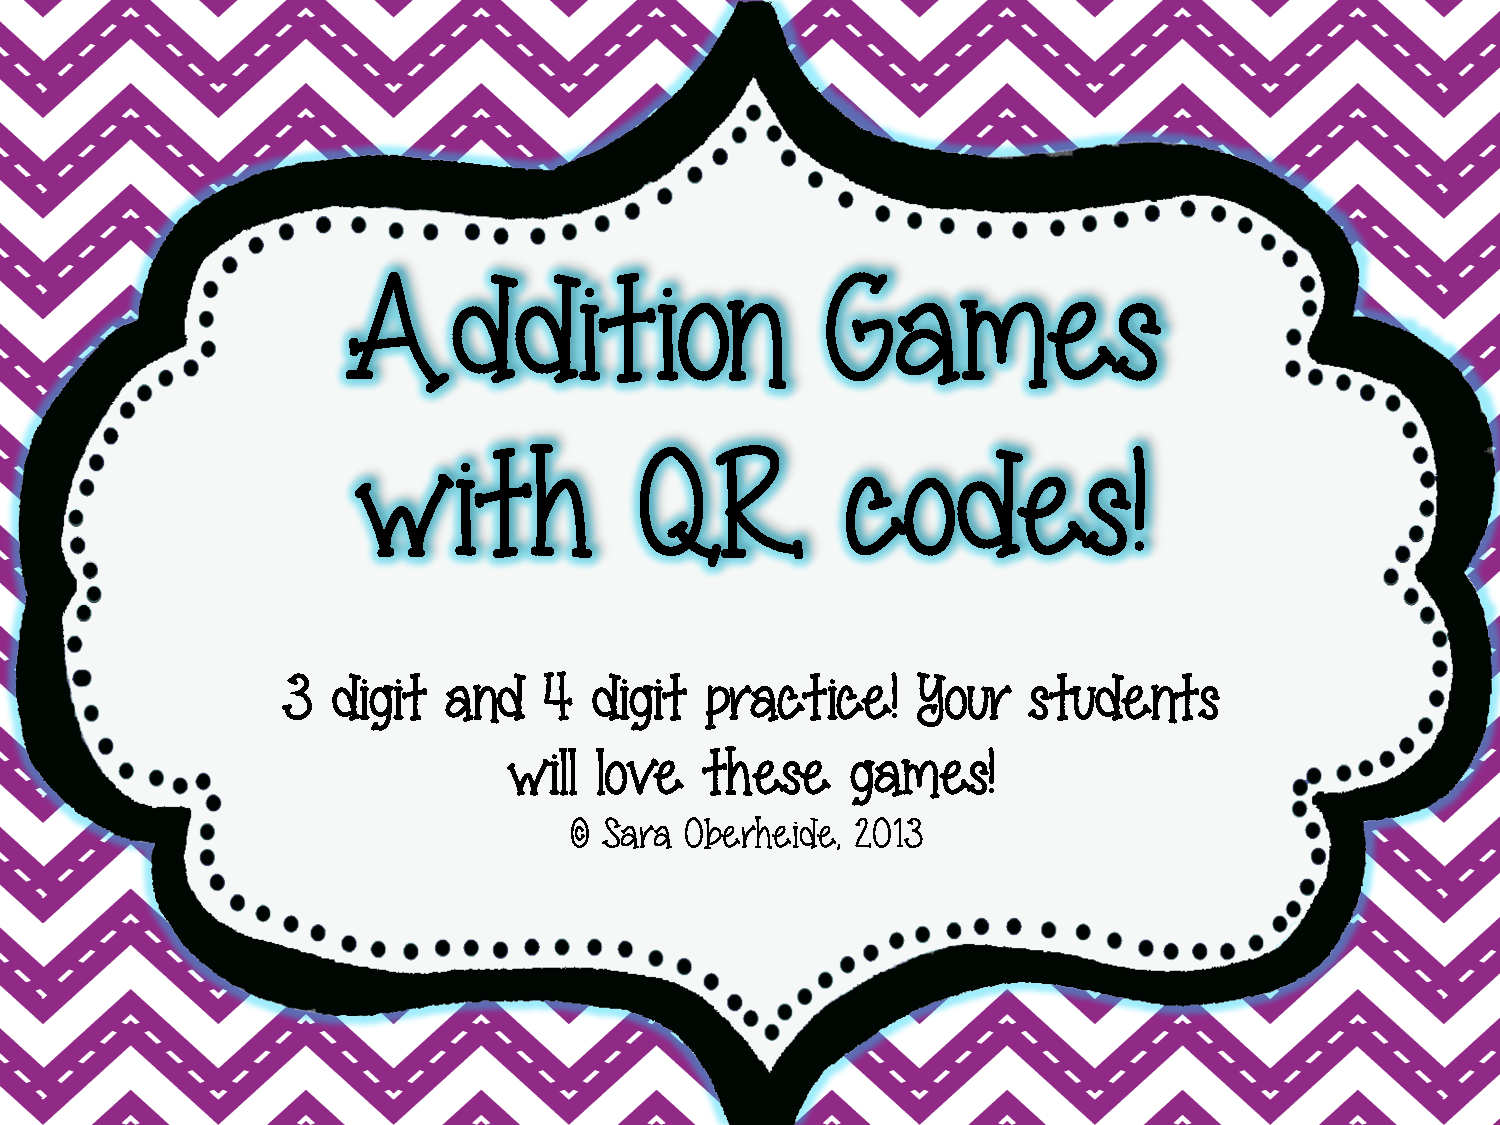 Addition Games With Qr Codes